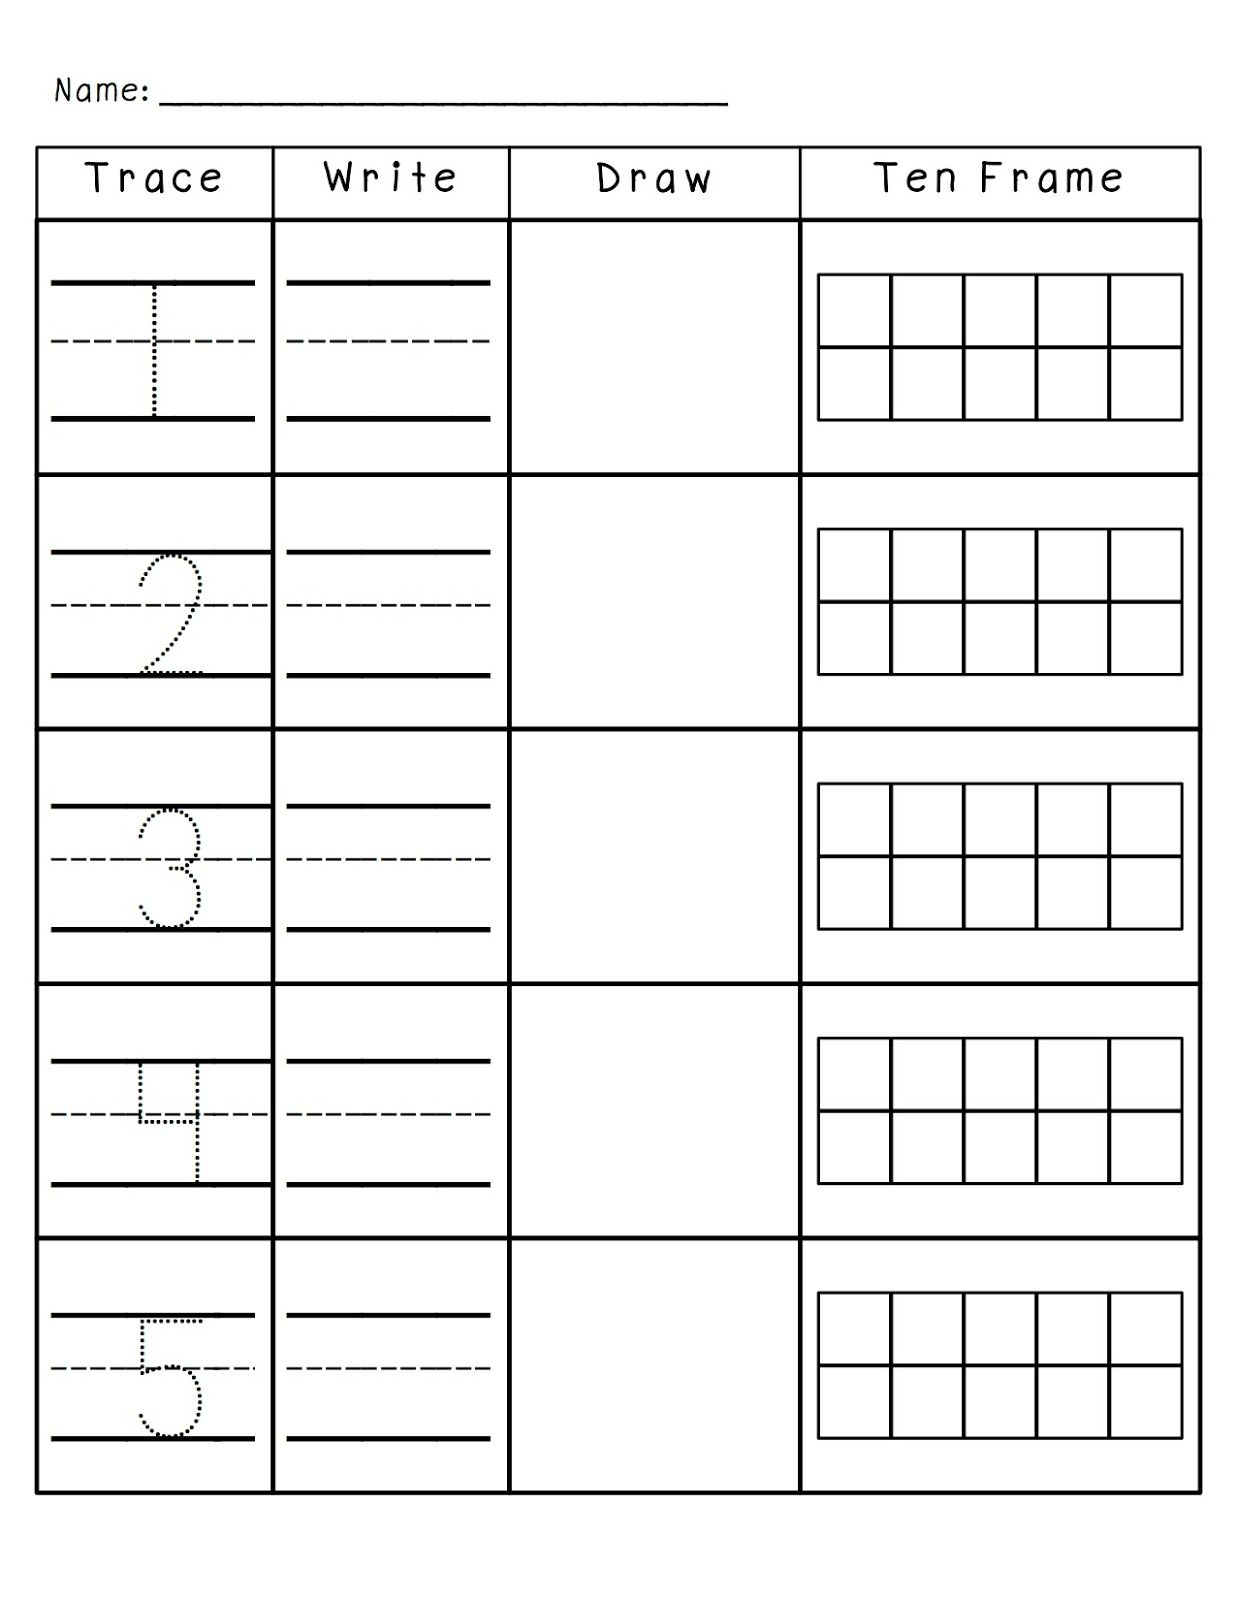 Draw and Write Spelling Printable